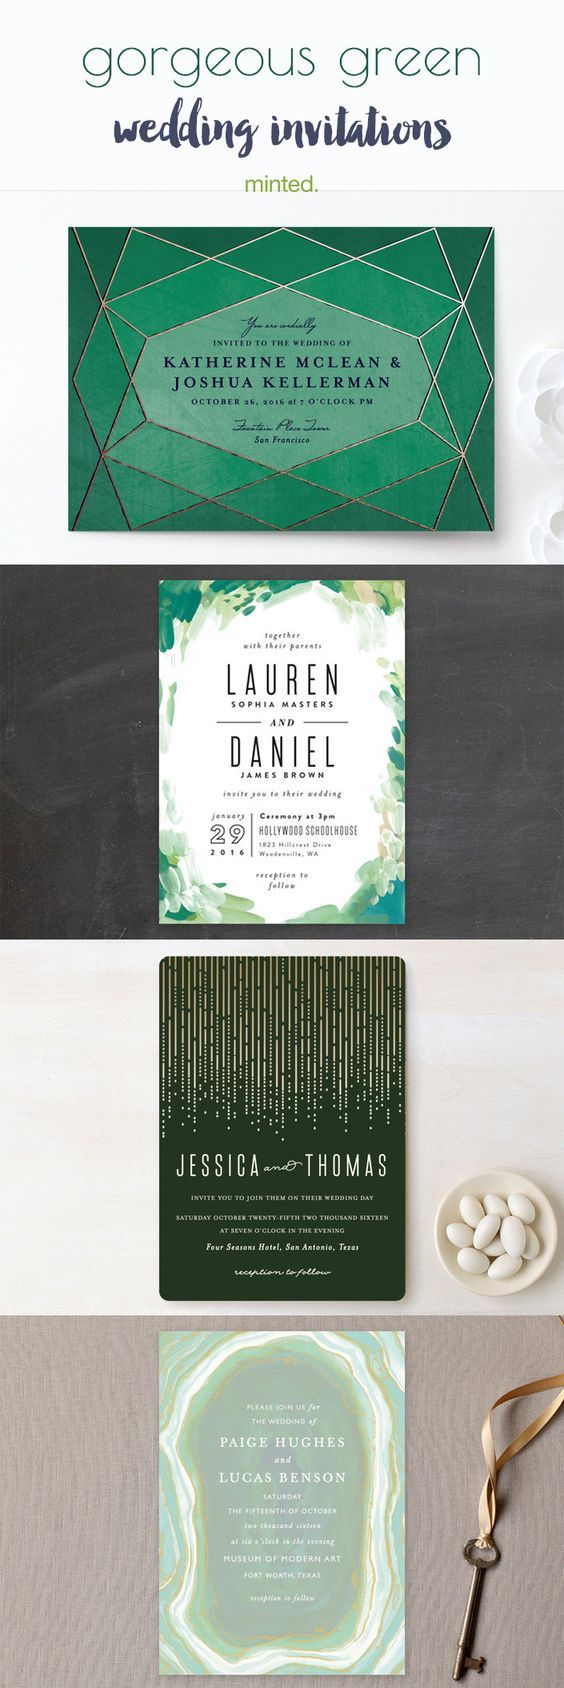 Gorgeous green wedding invitations perfect for emerald